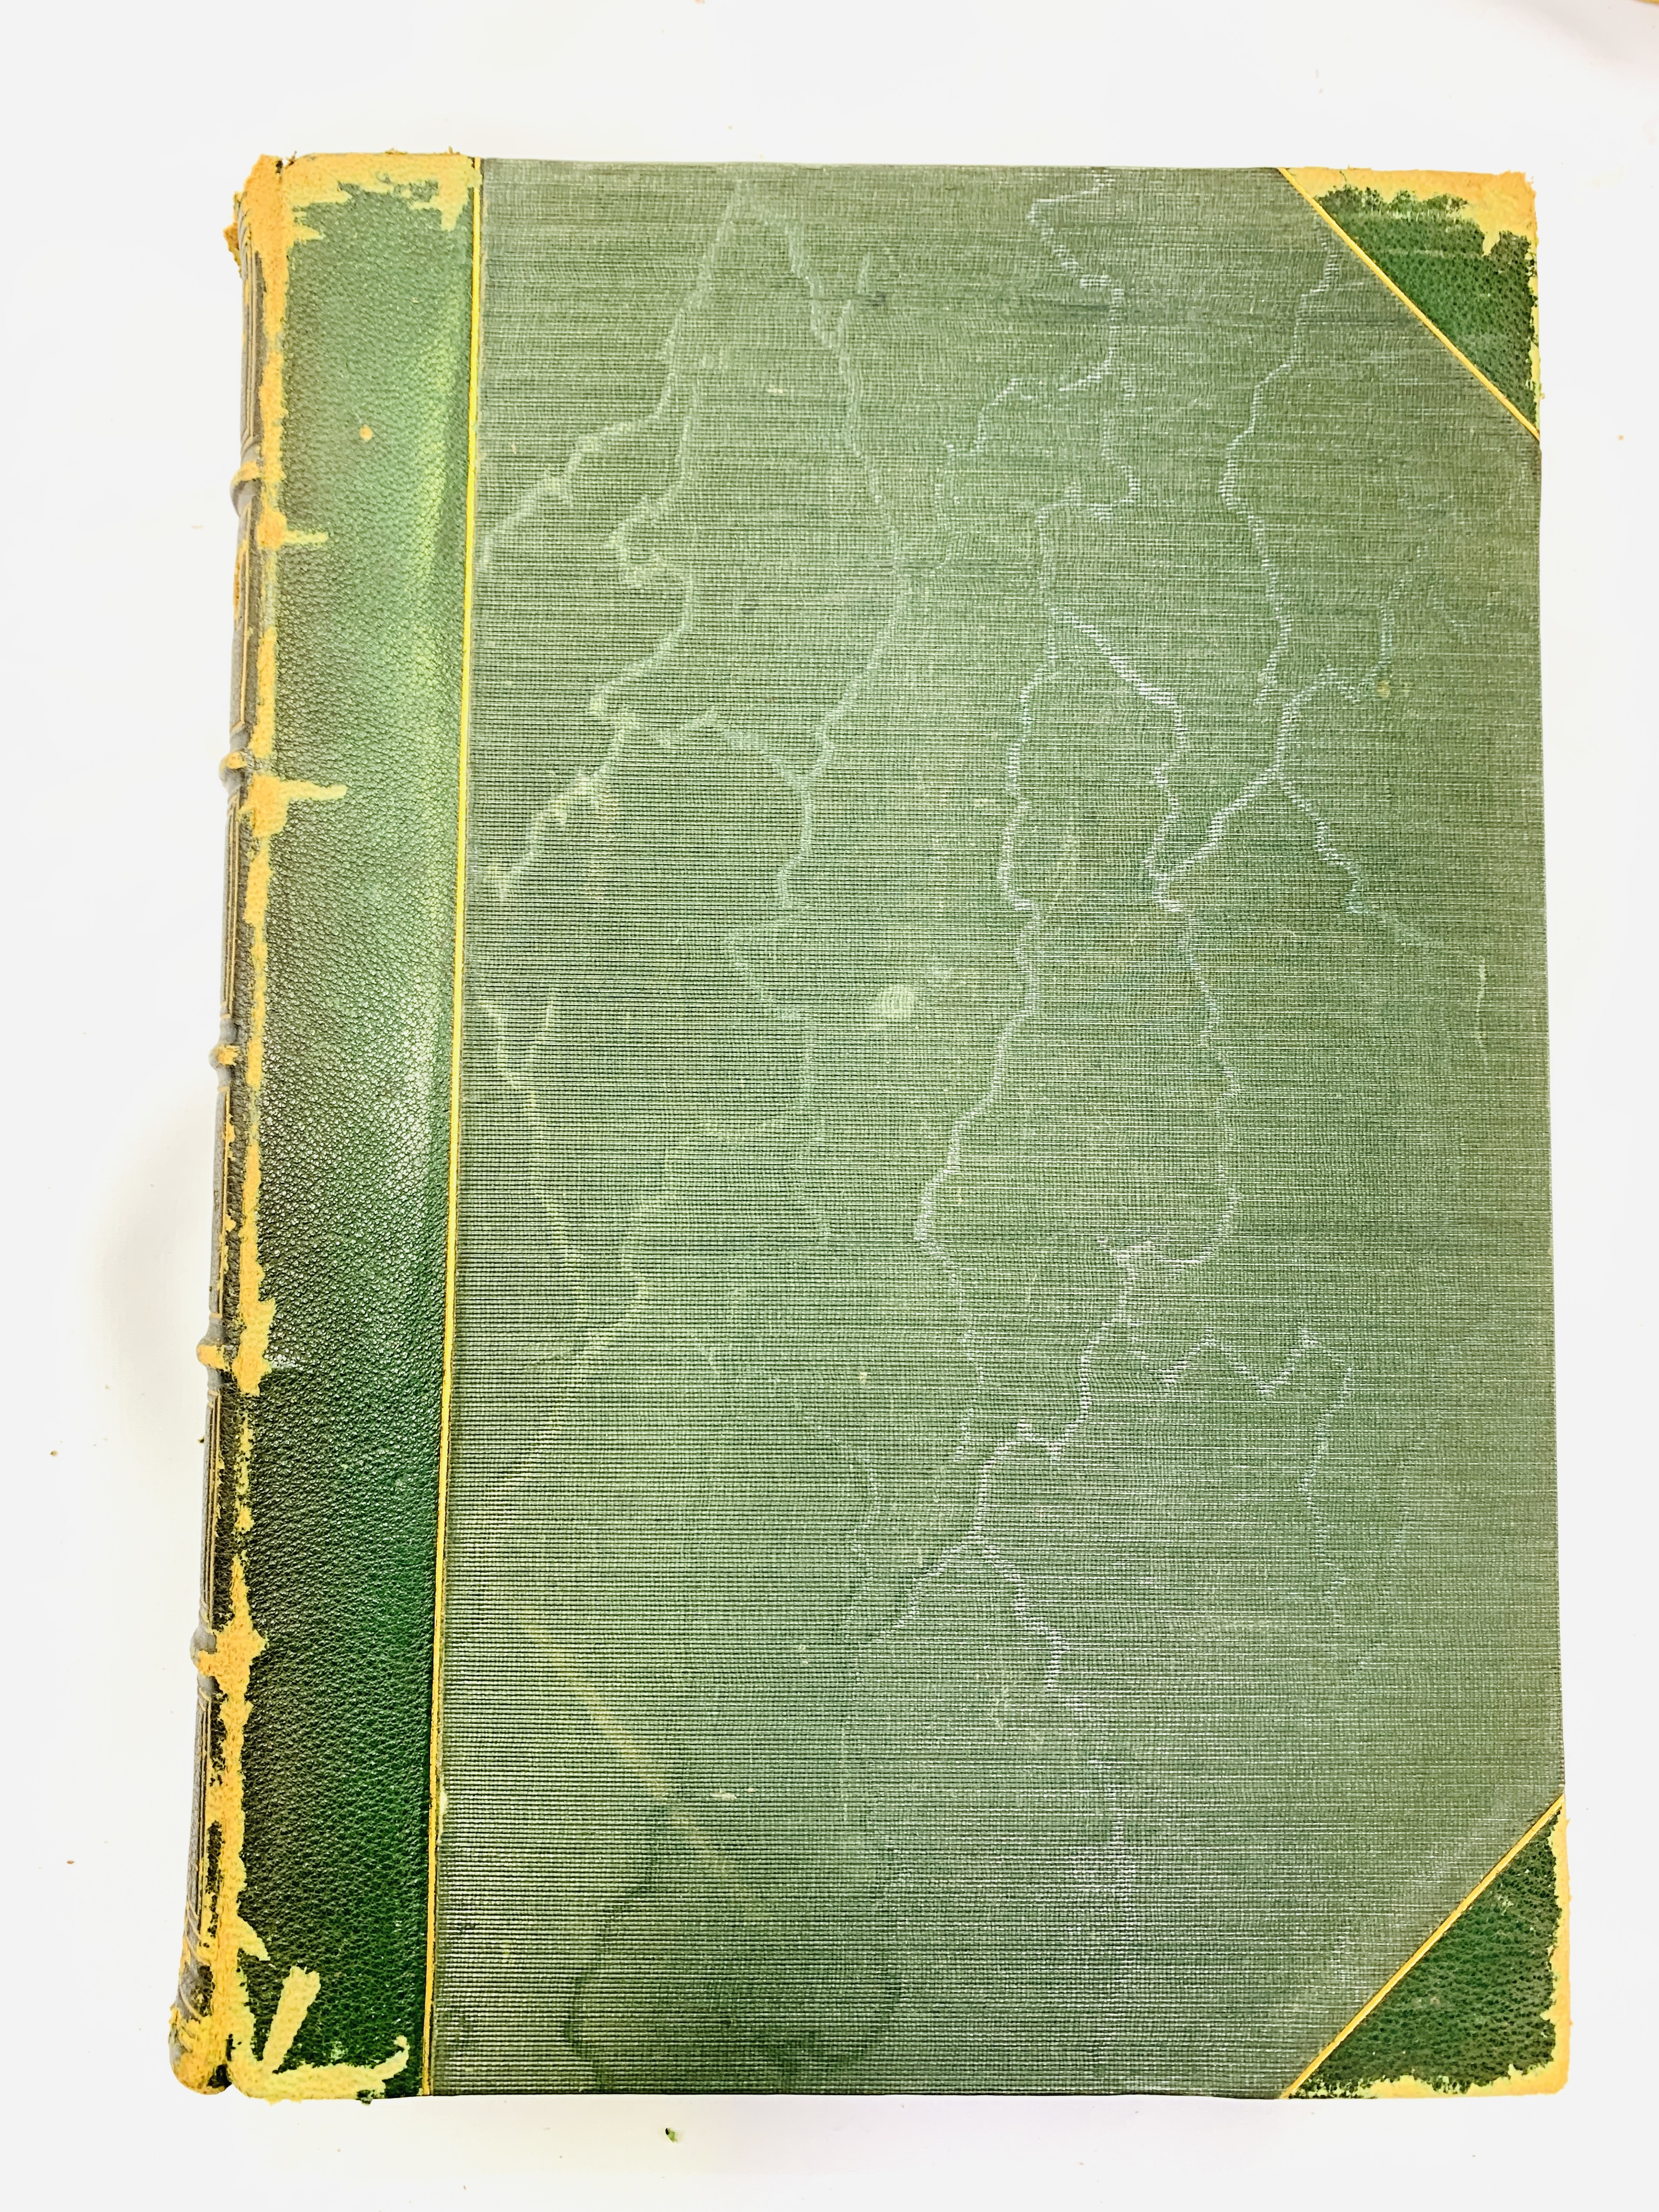 The Pictorial Edition of The Works of Shakespeare, edited by Charles Knight, 8 volumes, 1867 - Image 2 of 4